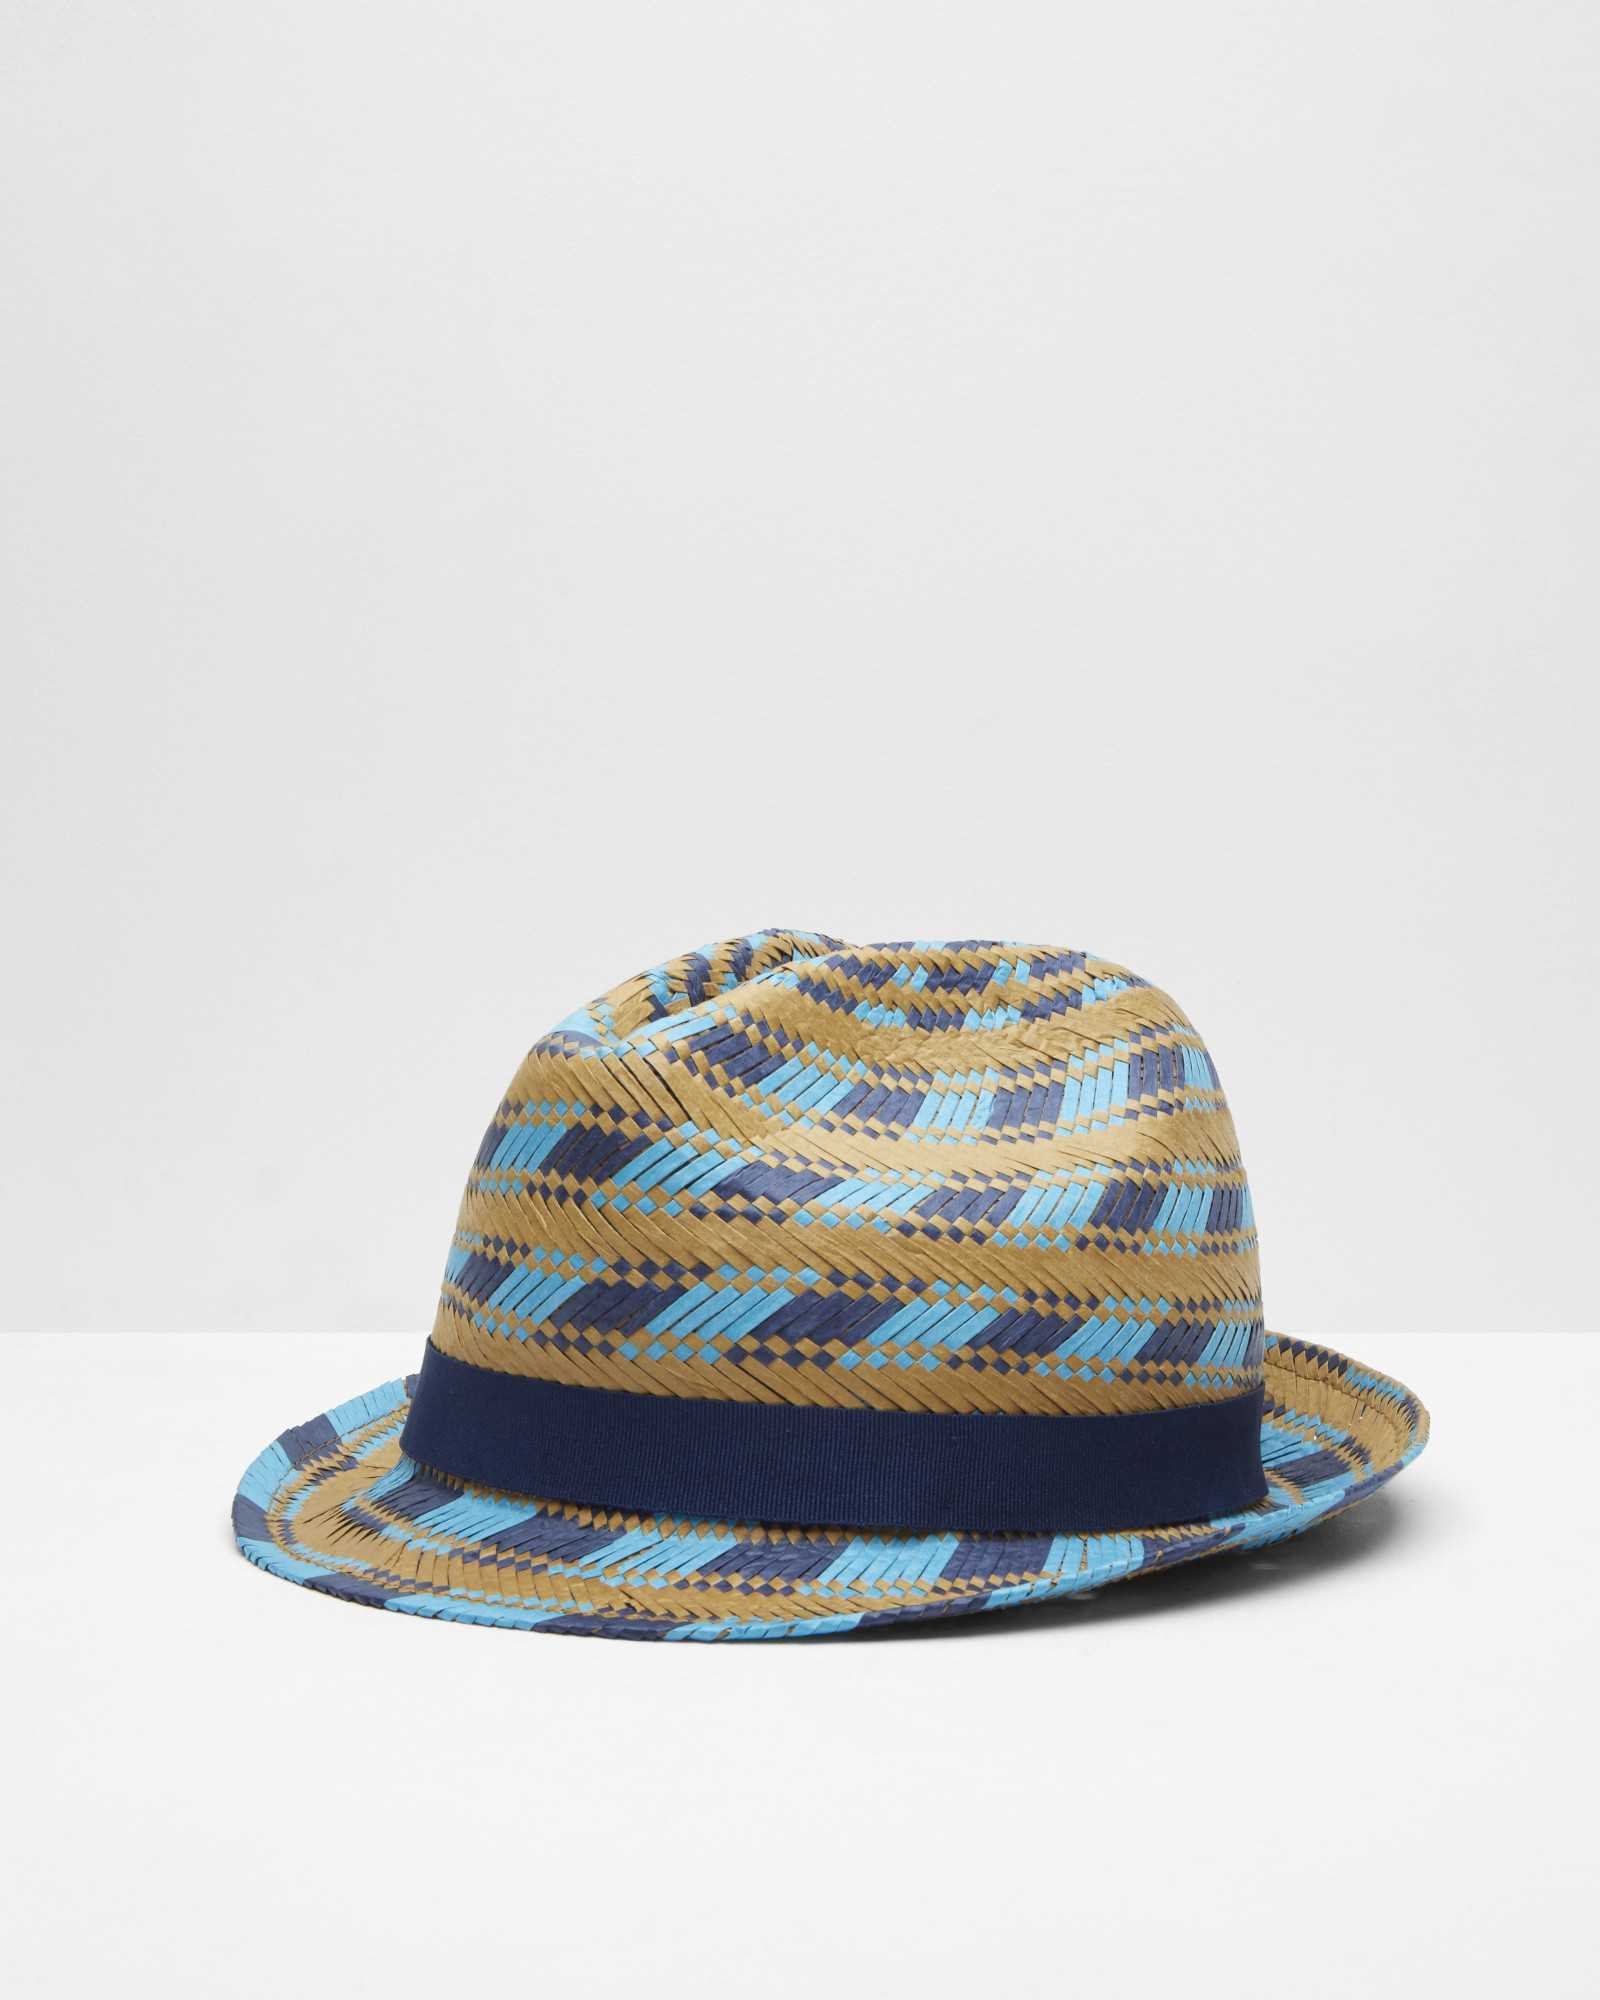 53bc5a92265e9e Ted Baker Multi-coloured Straw Trilby Hat in Natural for Men - Lyst